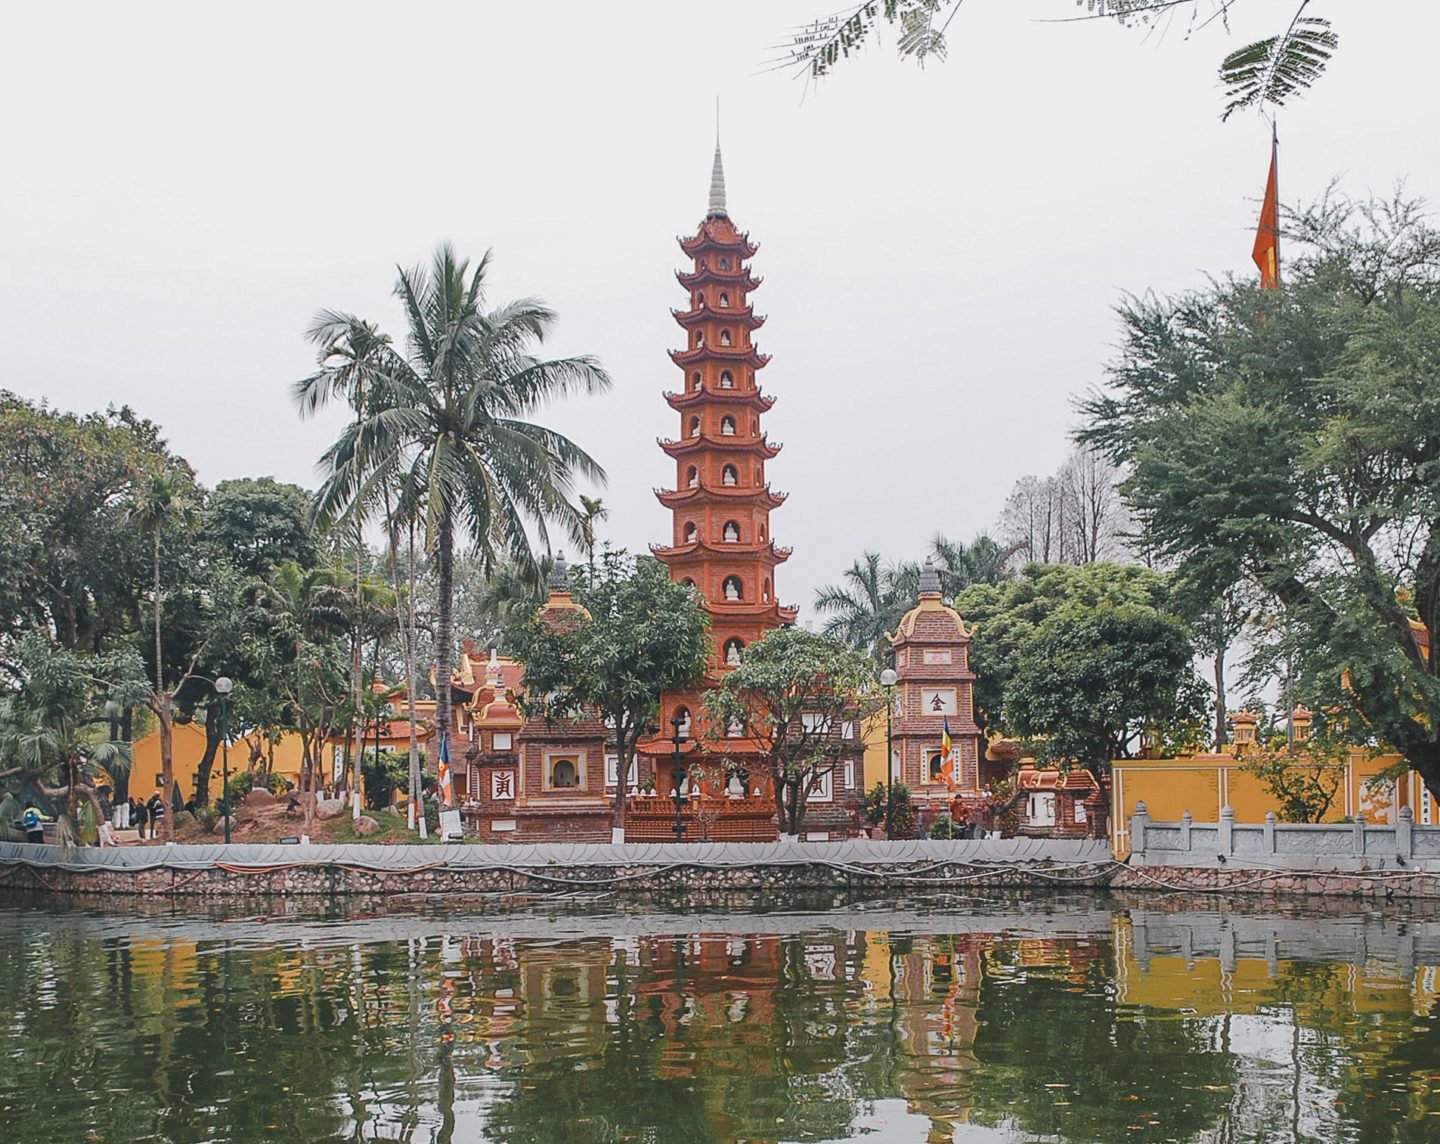 Tran Quoc Pagoda - Things to Do in Hanoi